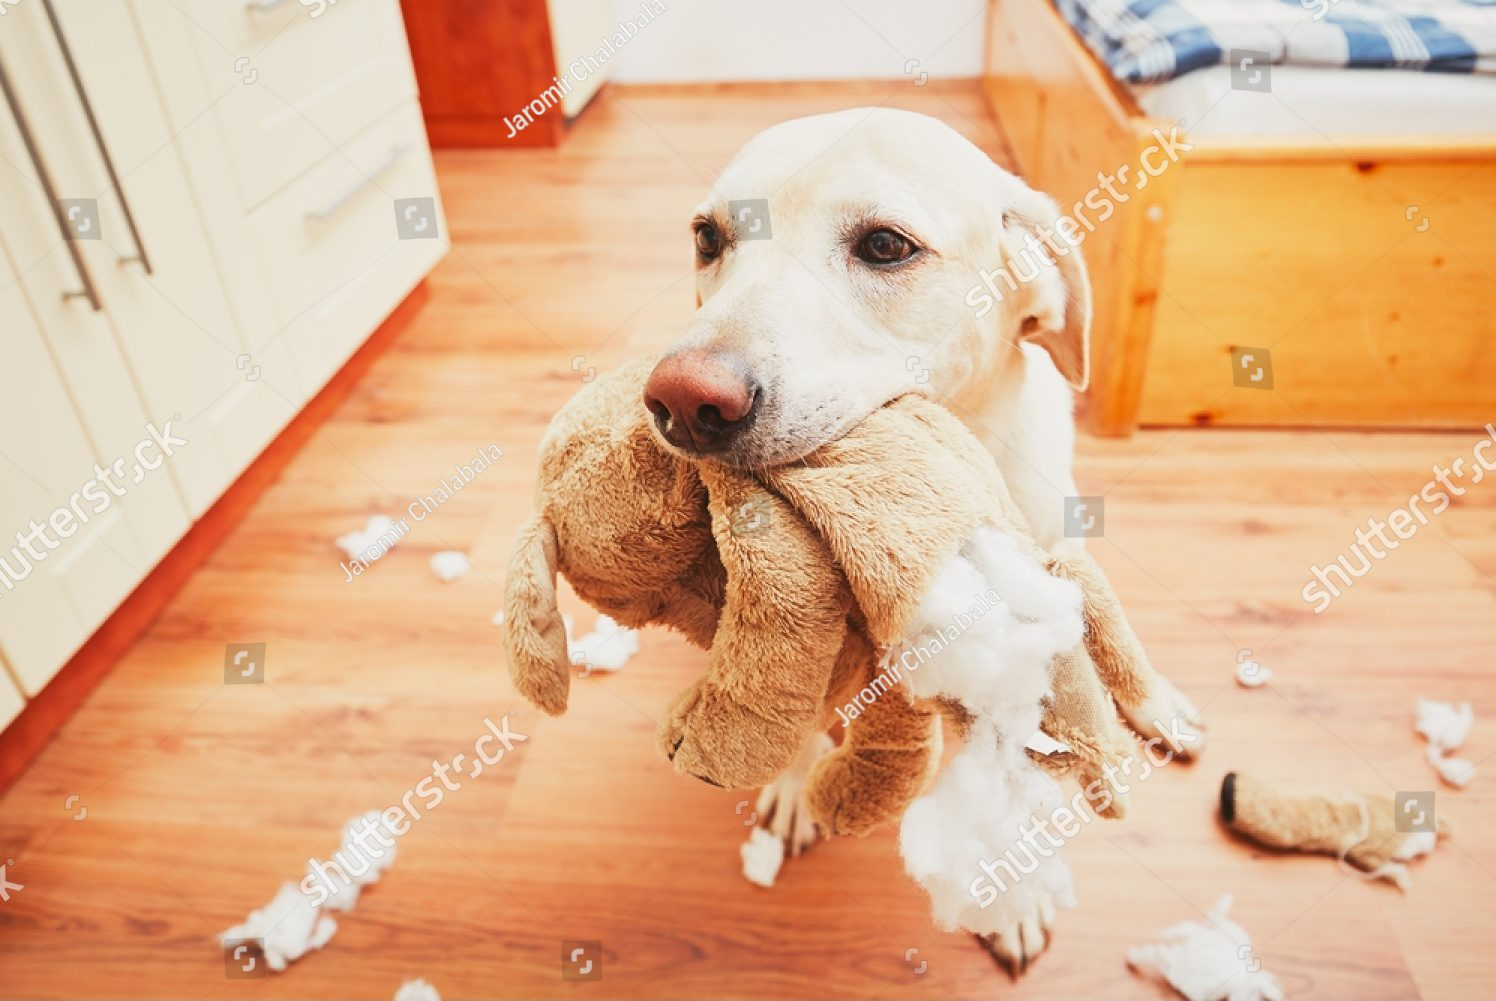 Labrador Retriever mess